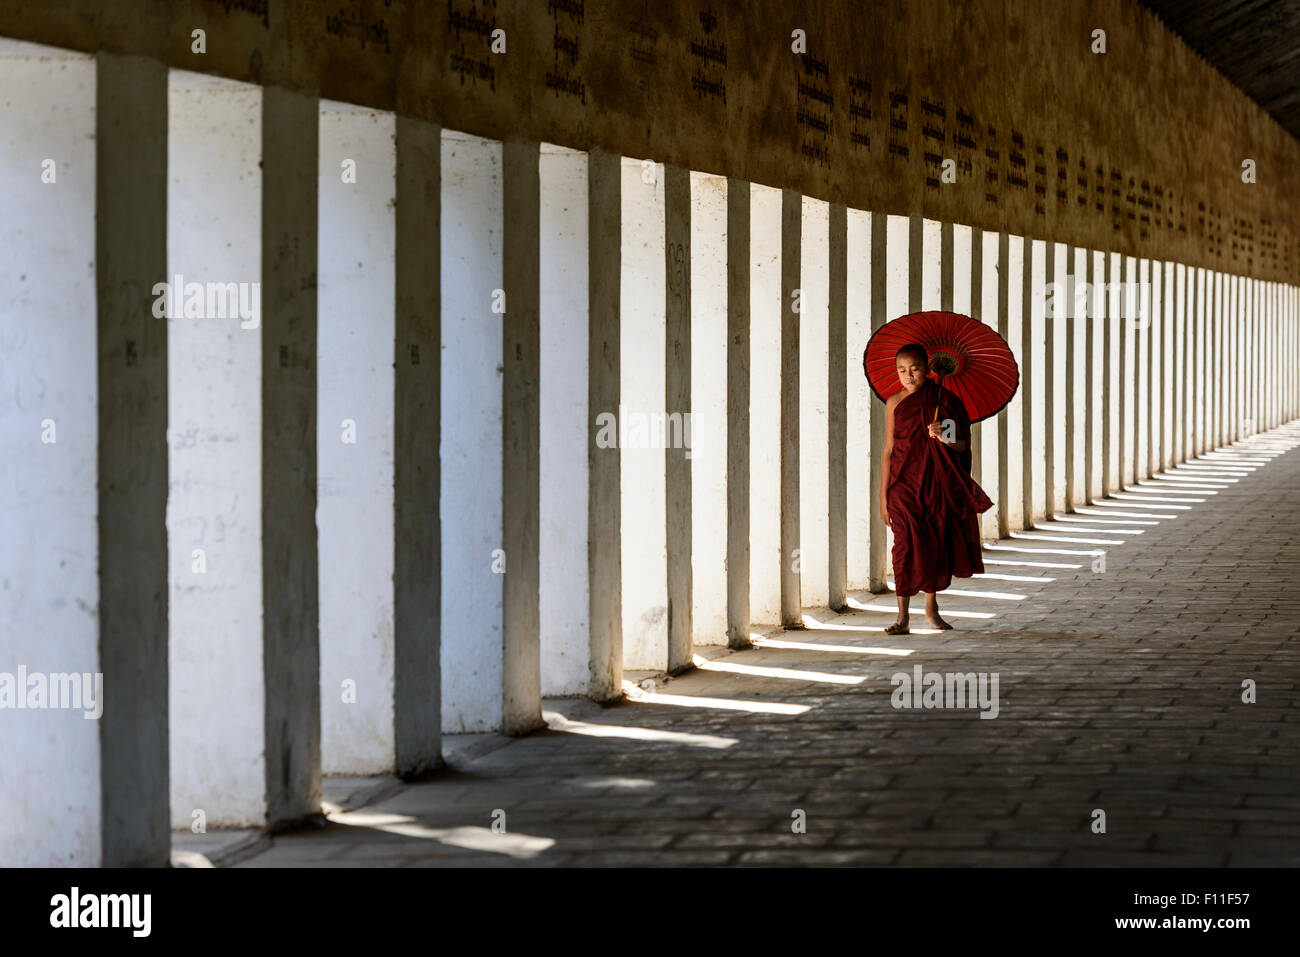 Asian monk-in-training carrying parasol in hallway - Stock Image